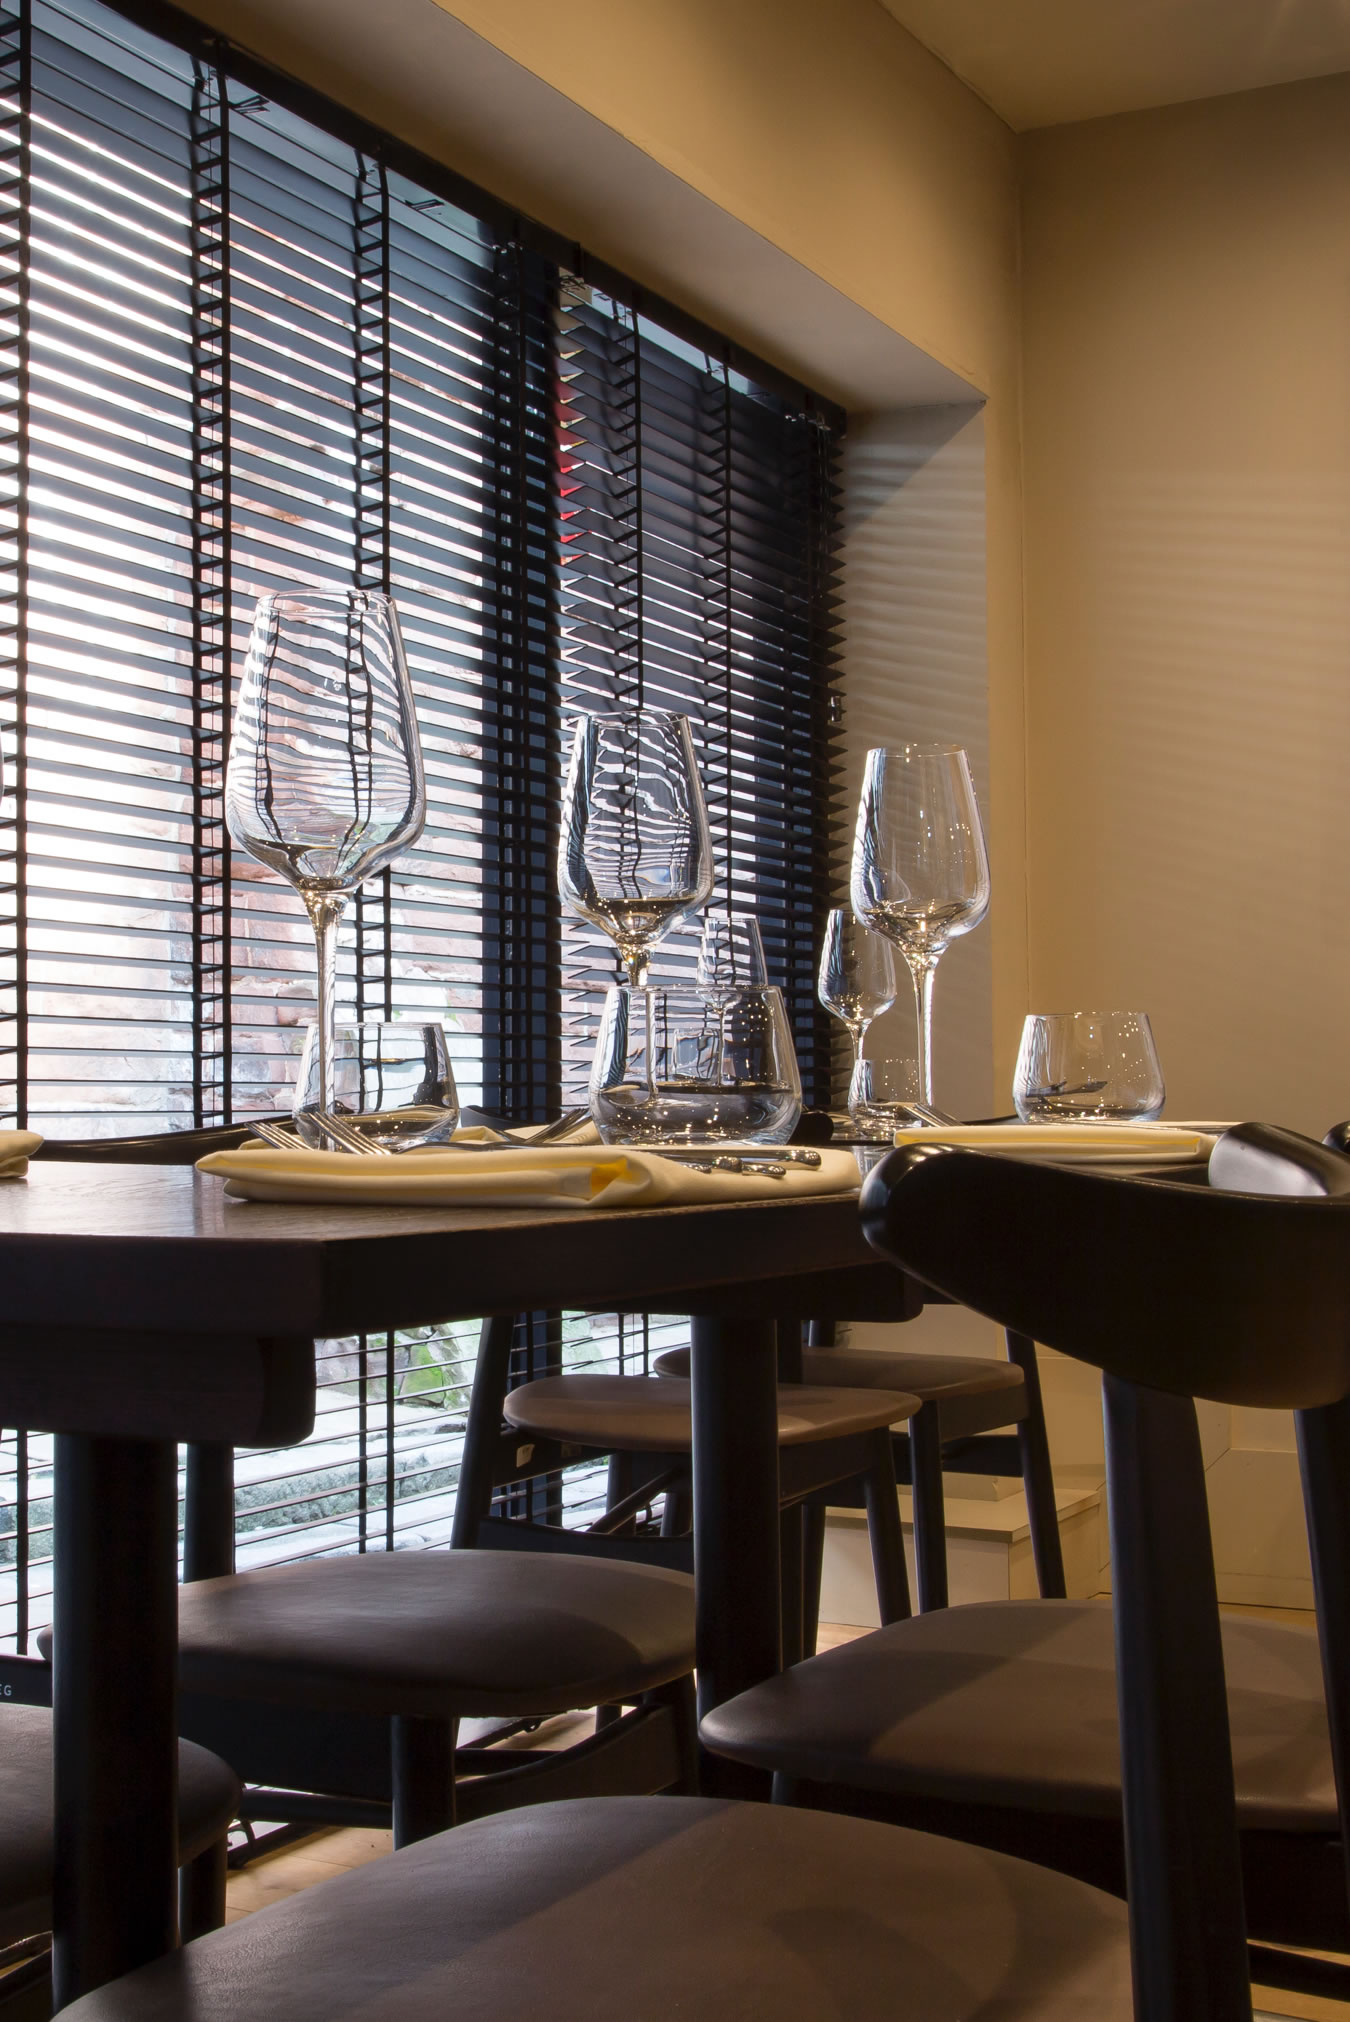 Chef's Table. A project by James Roberts Interior Design Practice